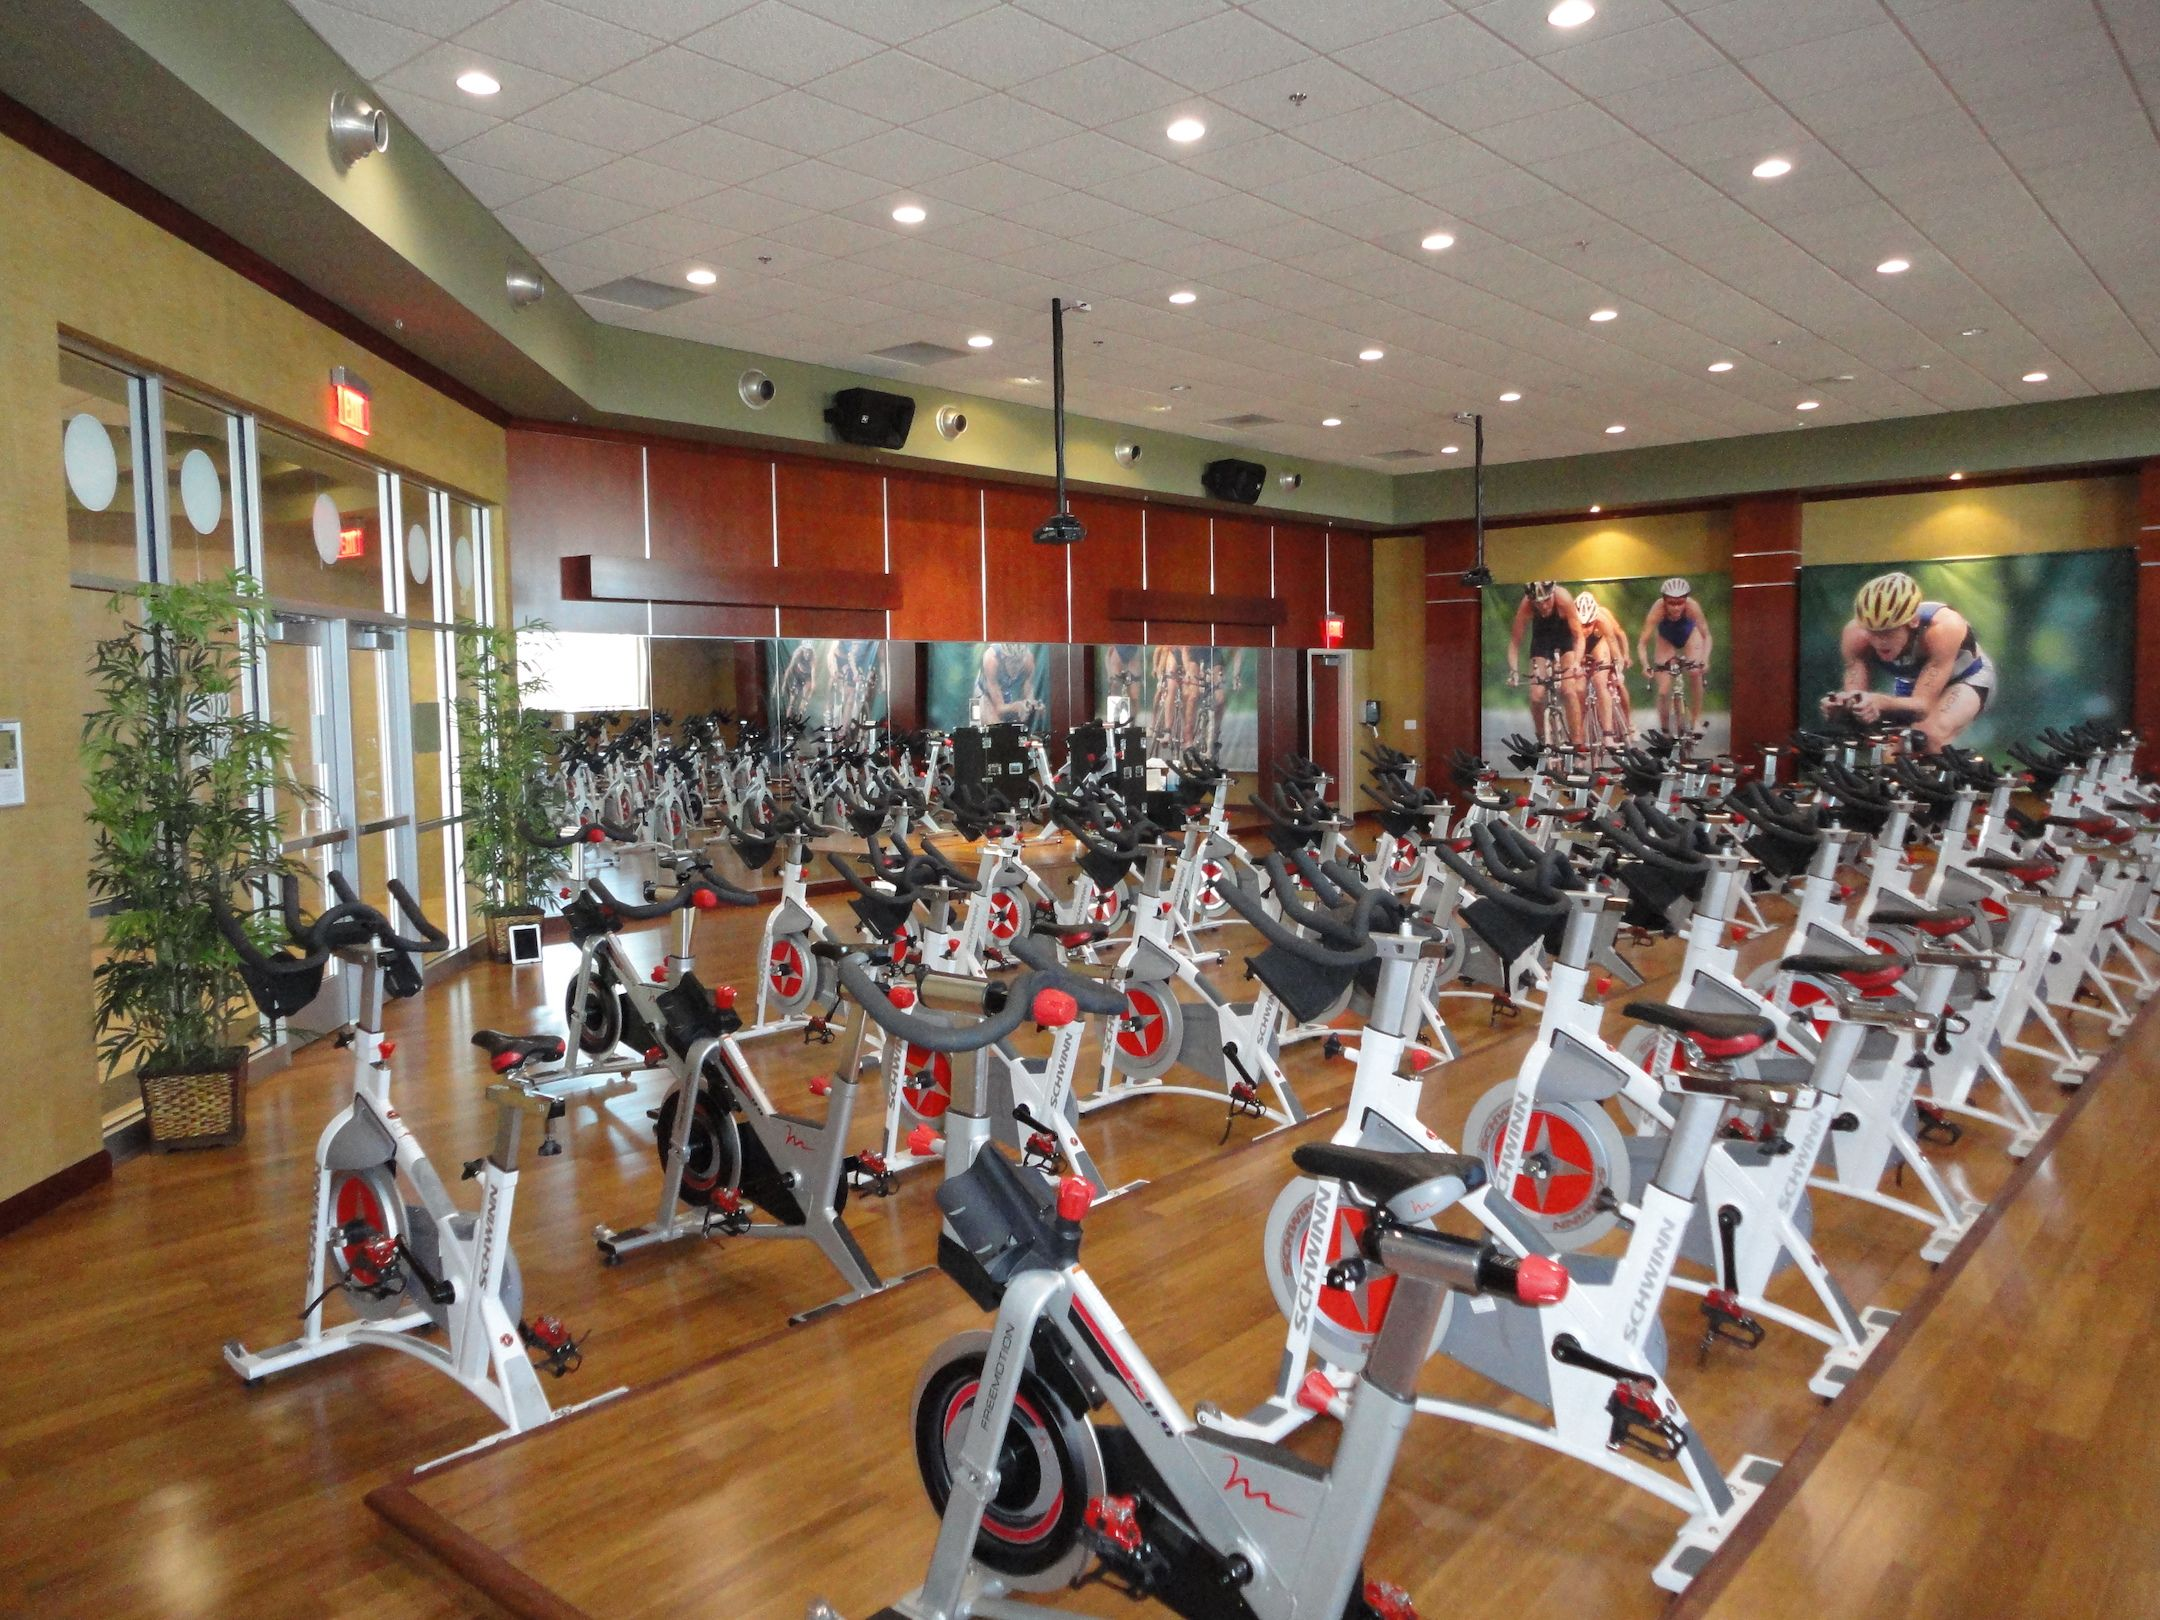 Emanuelson Podas Fitness Center Design Life Time Fitness Cycling Classroom Inside A Life Time Fitness Loc Fitness Center Design Lifetime Fitness Indoor Spa